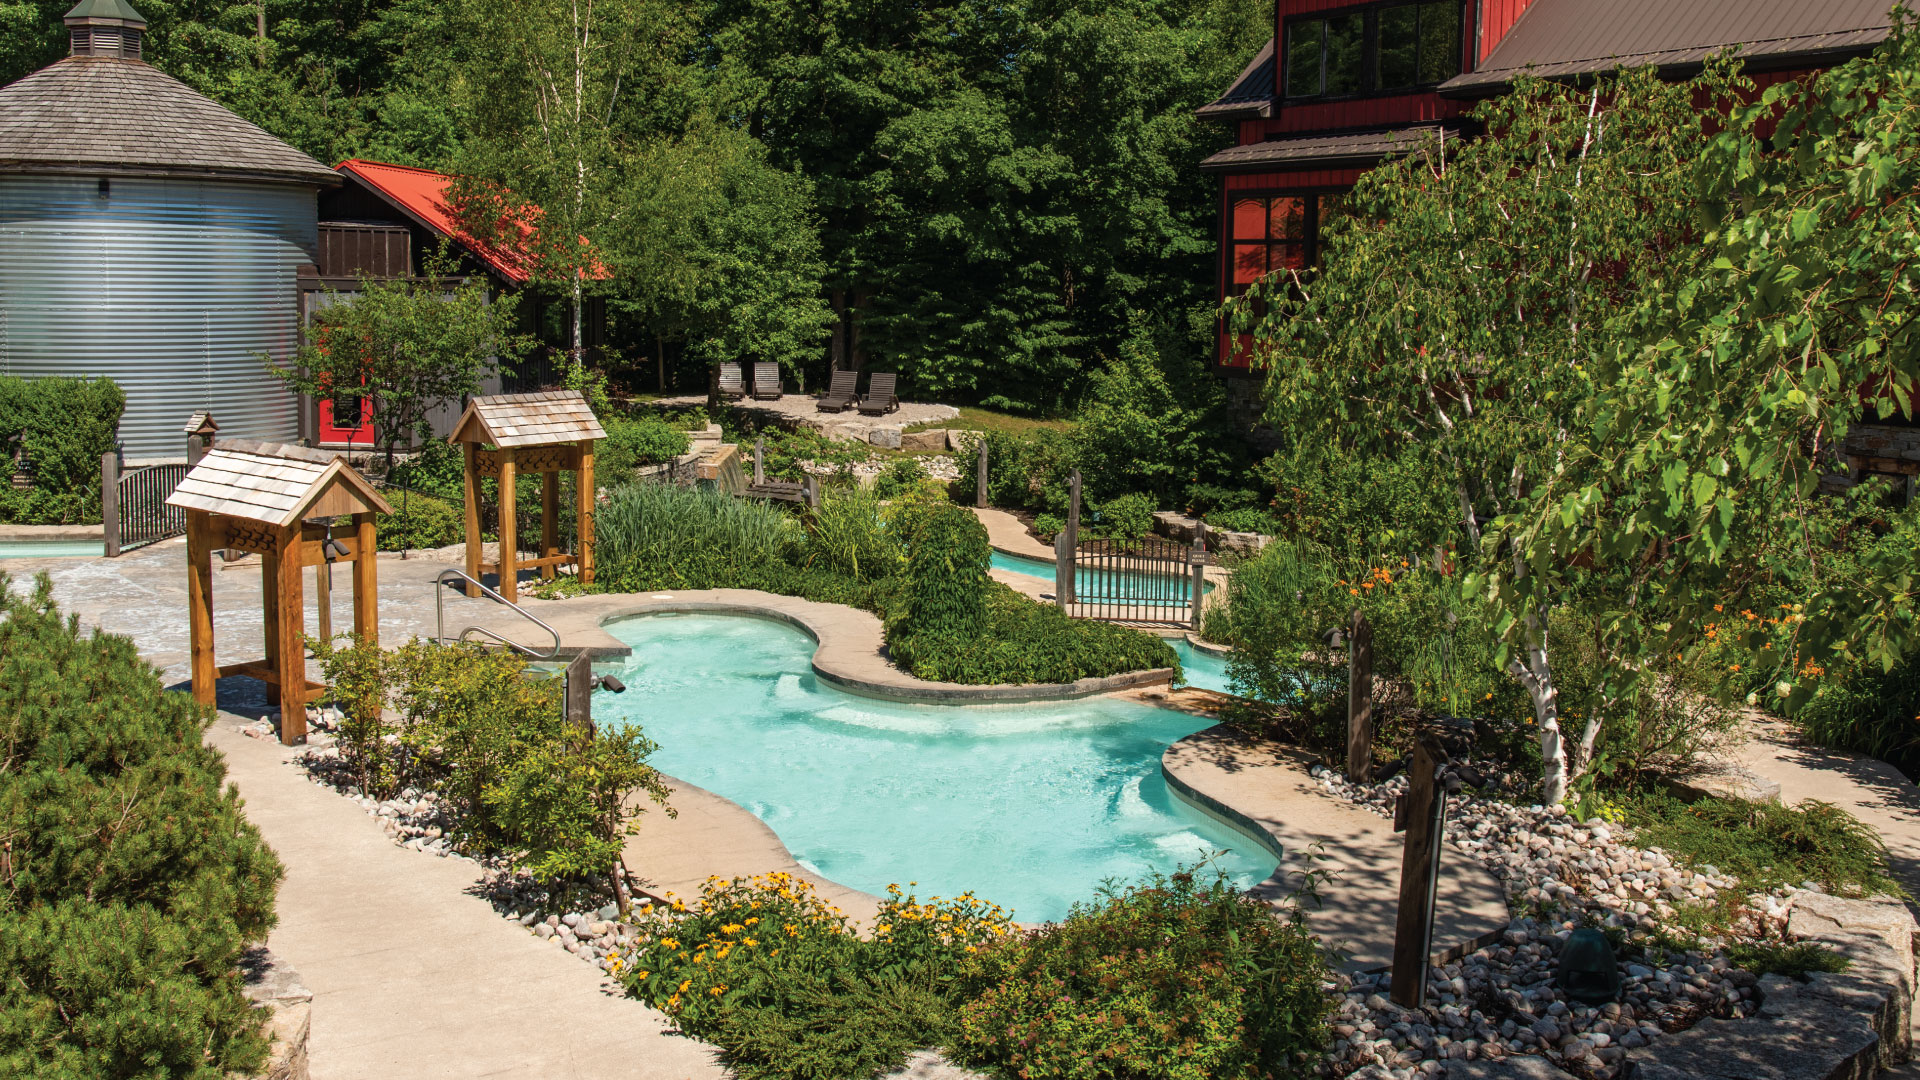 A sunny summer day overlooking the Baths at Scandinave Spa Blue Mountain.